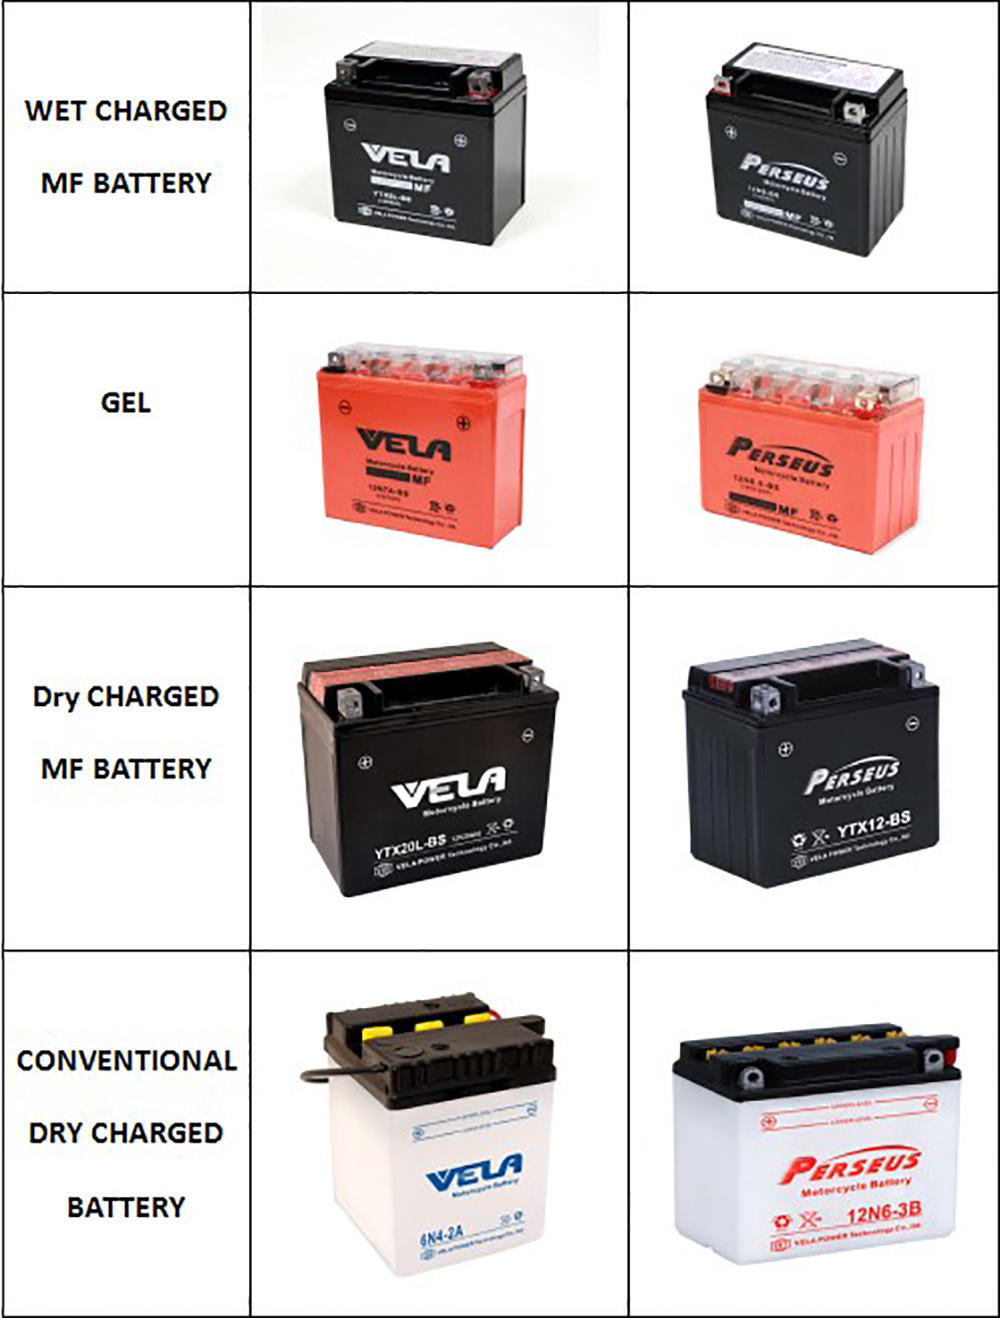 VELA maintenance free wet charged battery optimal for autocycle-2